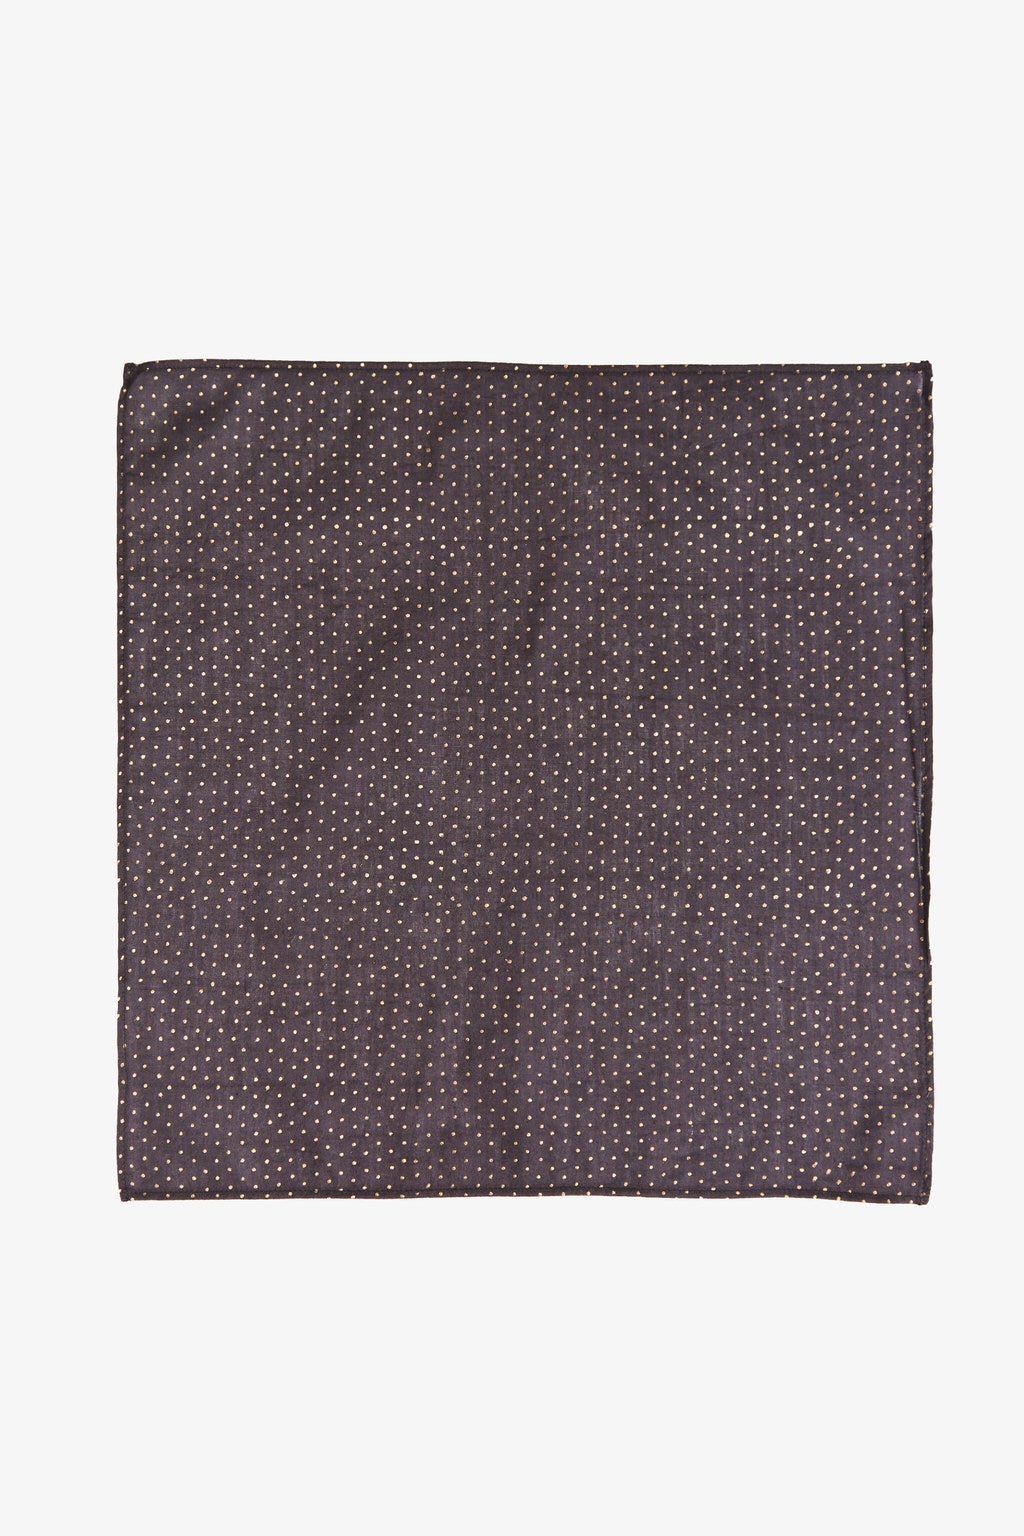 Harmony - Black Cotton Silk Pocket Square